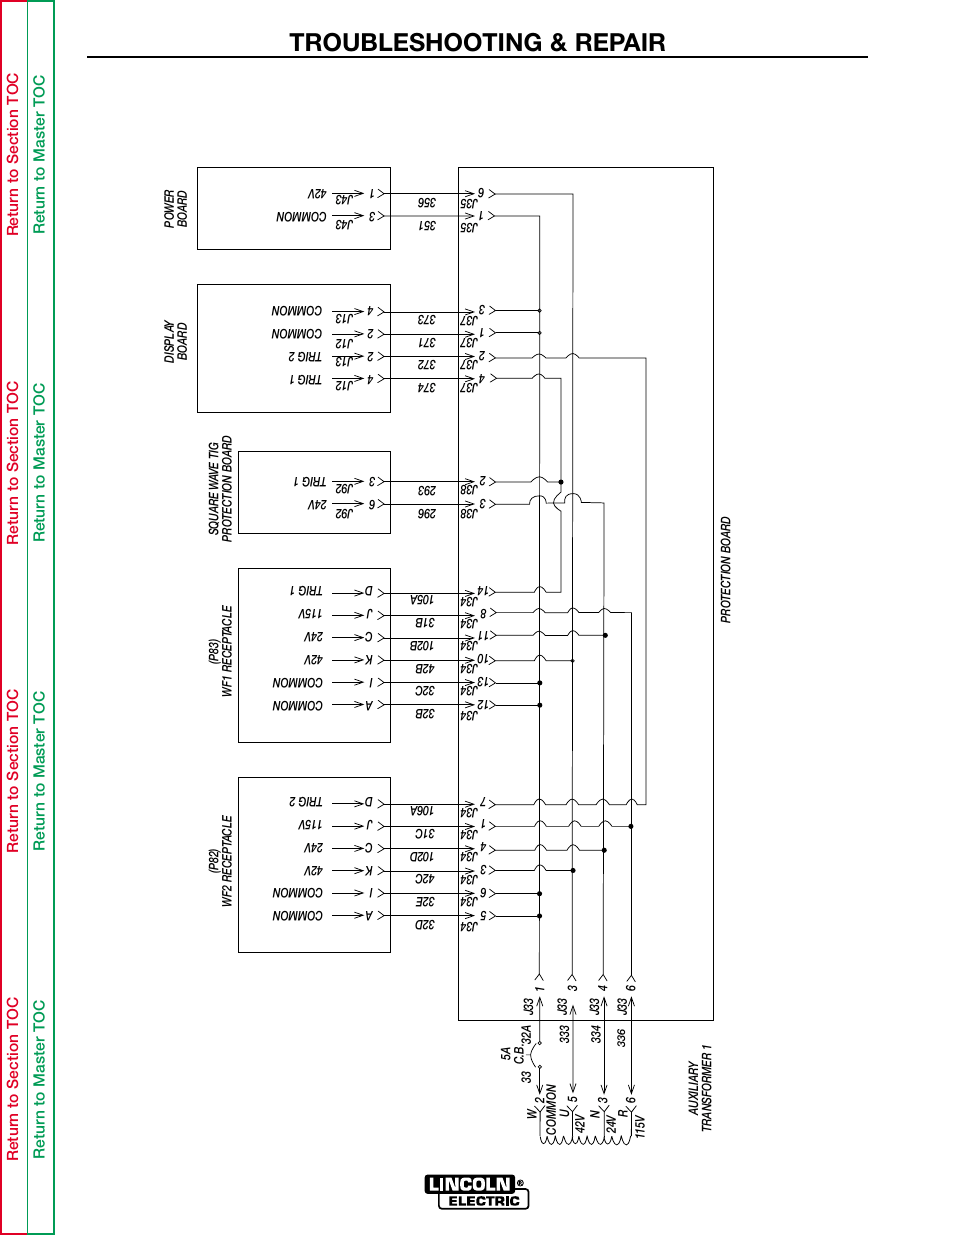 hight resolution of cuit wiring diagram figure f 44 troubleshooting repair lincoln electric invertec